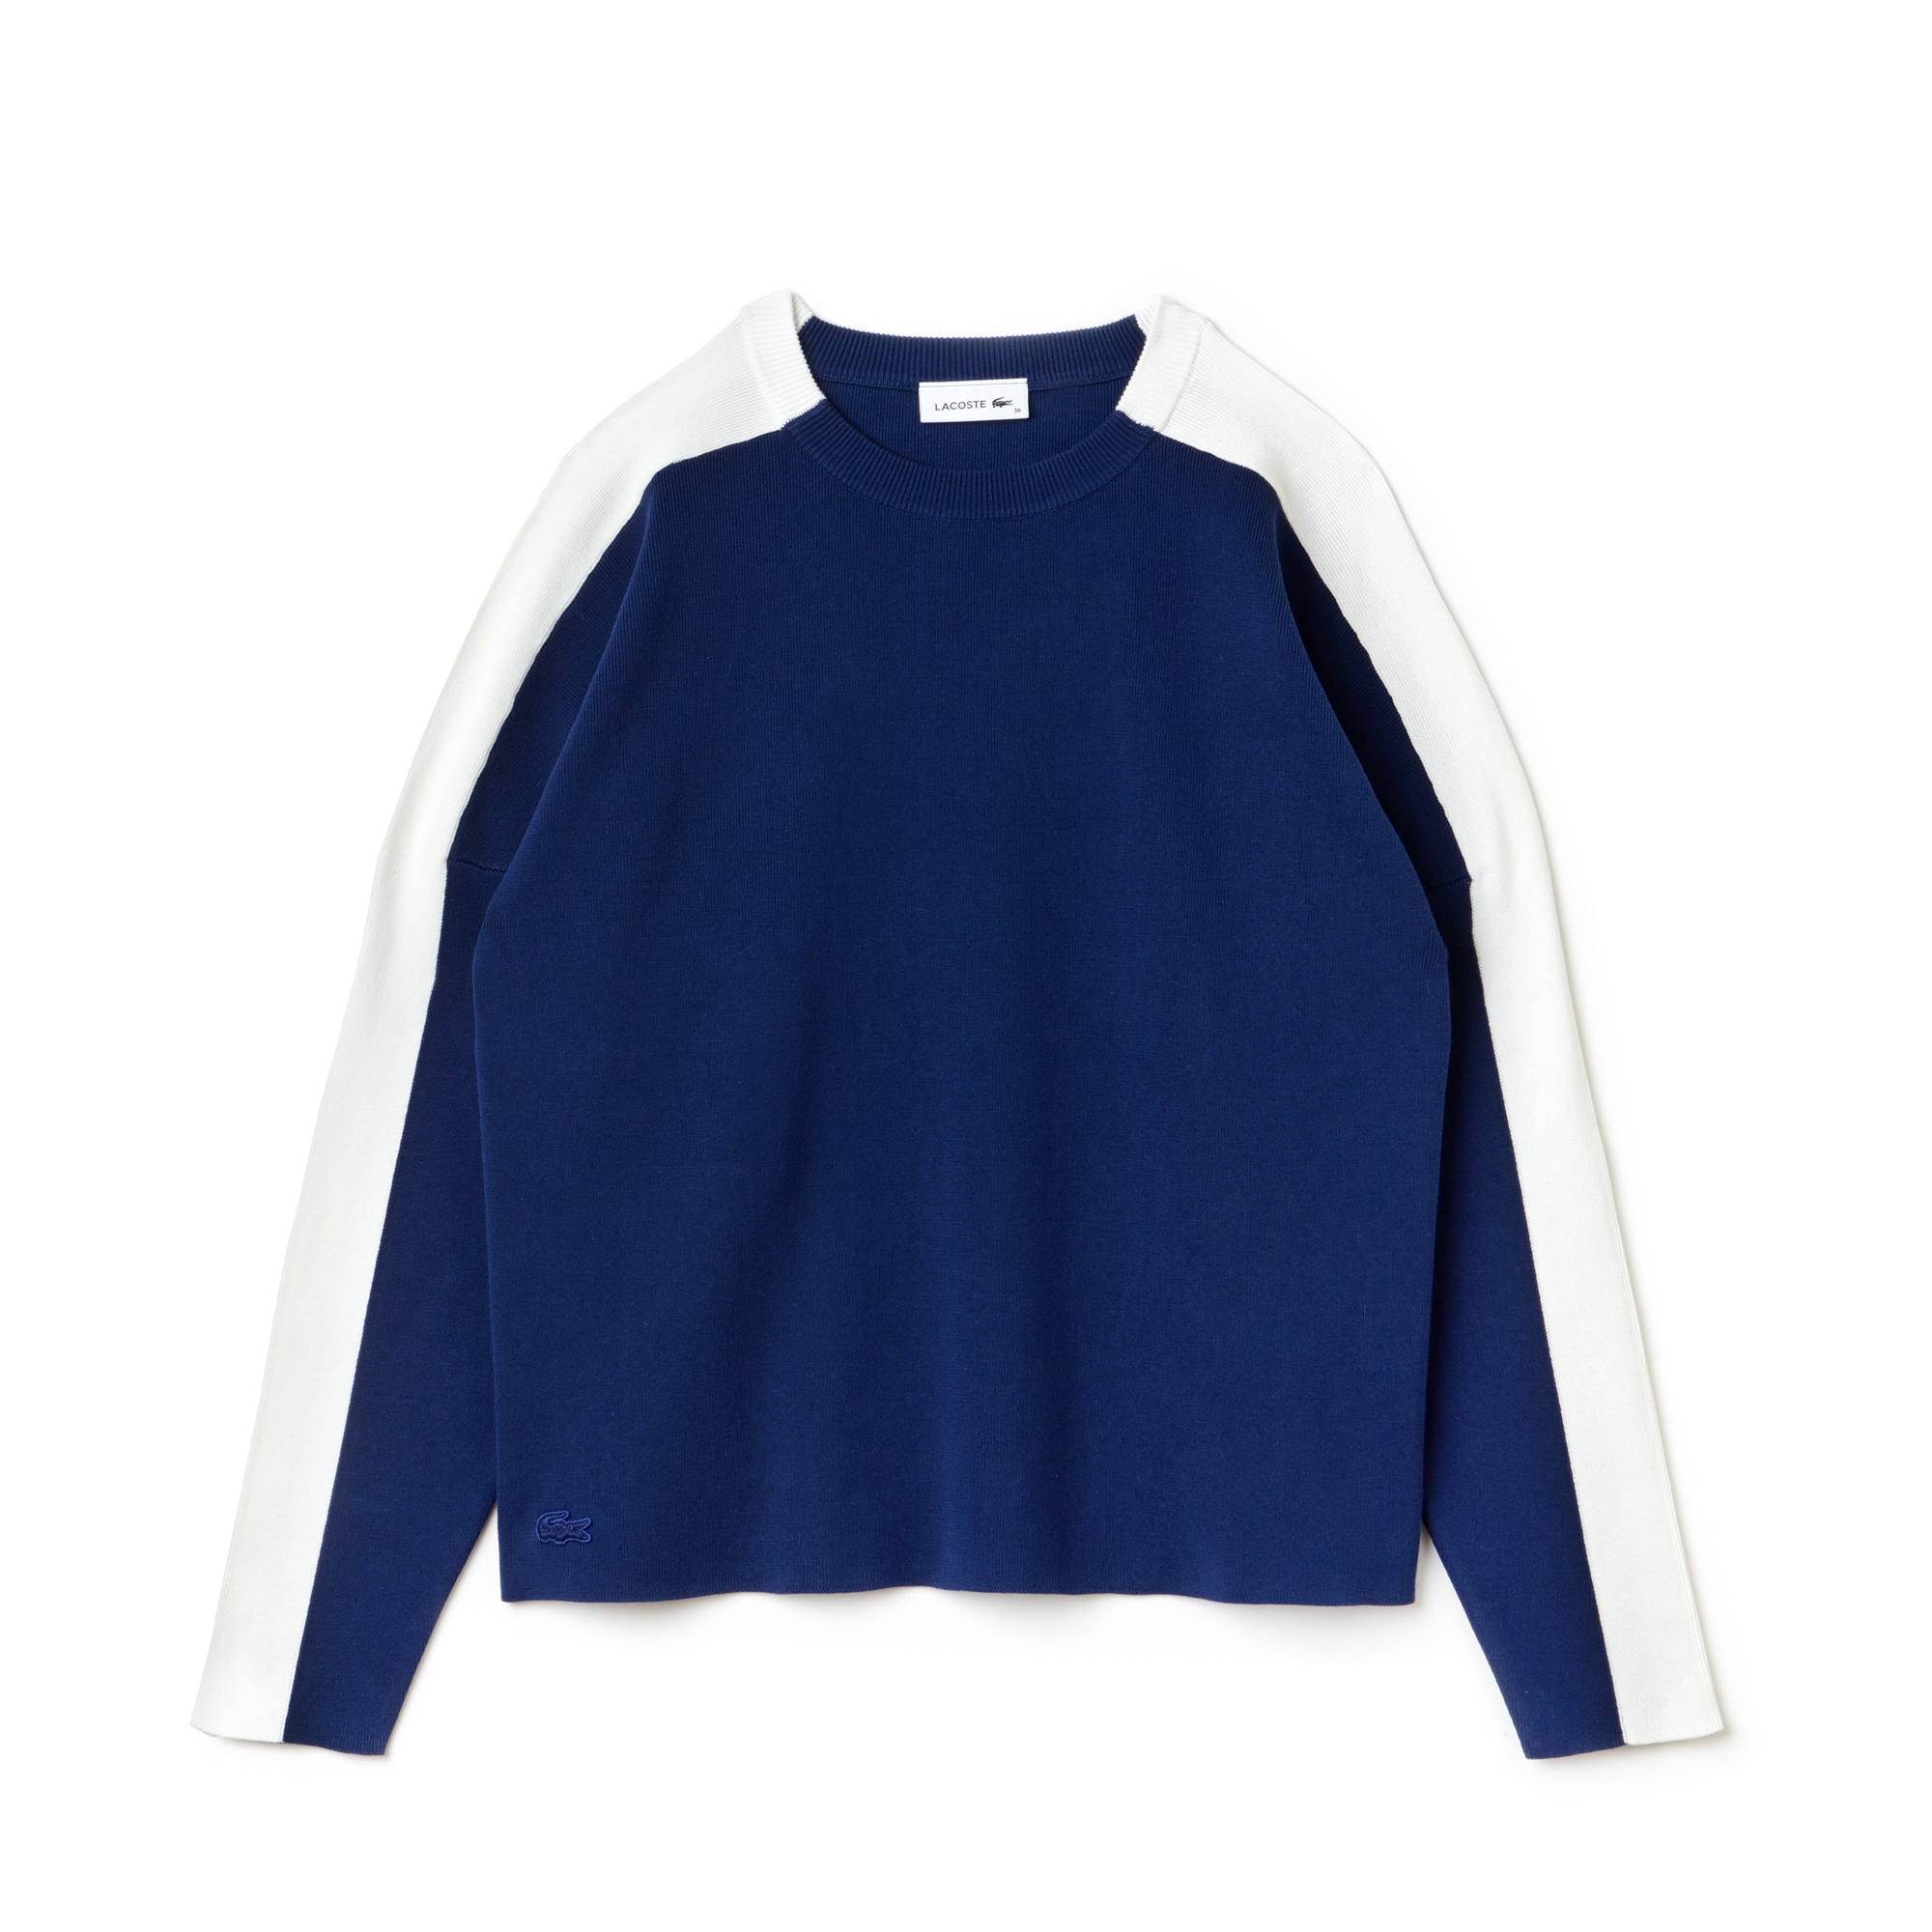 Women's Colorblock Cotton Knit Sweatshirt